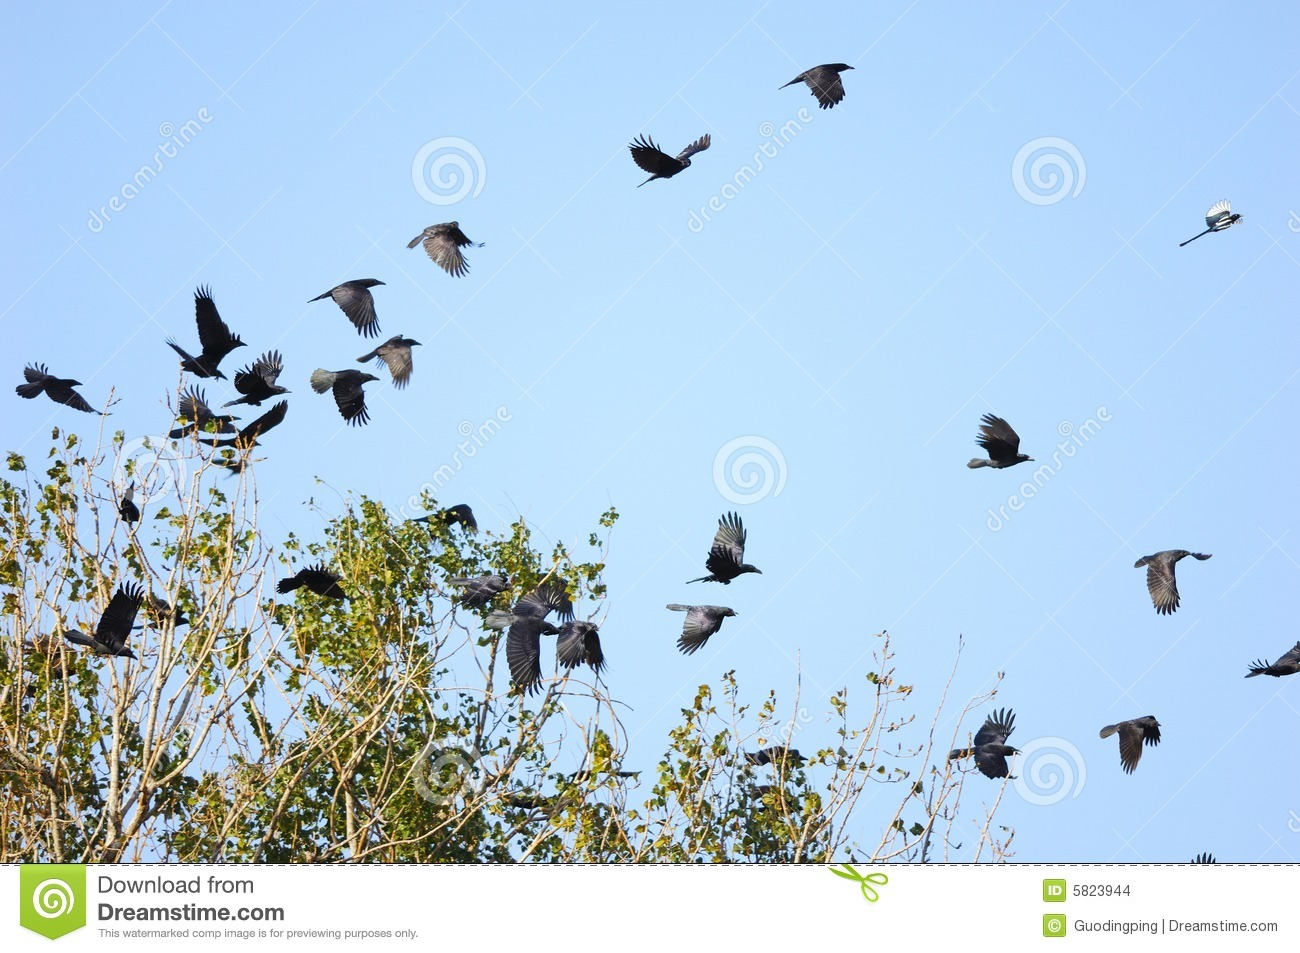 Flying Birds Free Stock Photos Download 3 416 Free Stock: Birds Flying Stock Photo. Image Of Branches, Flock, Branch